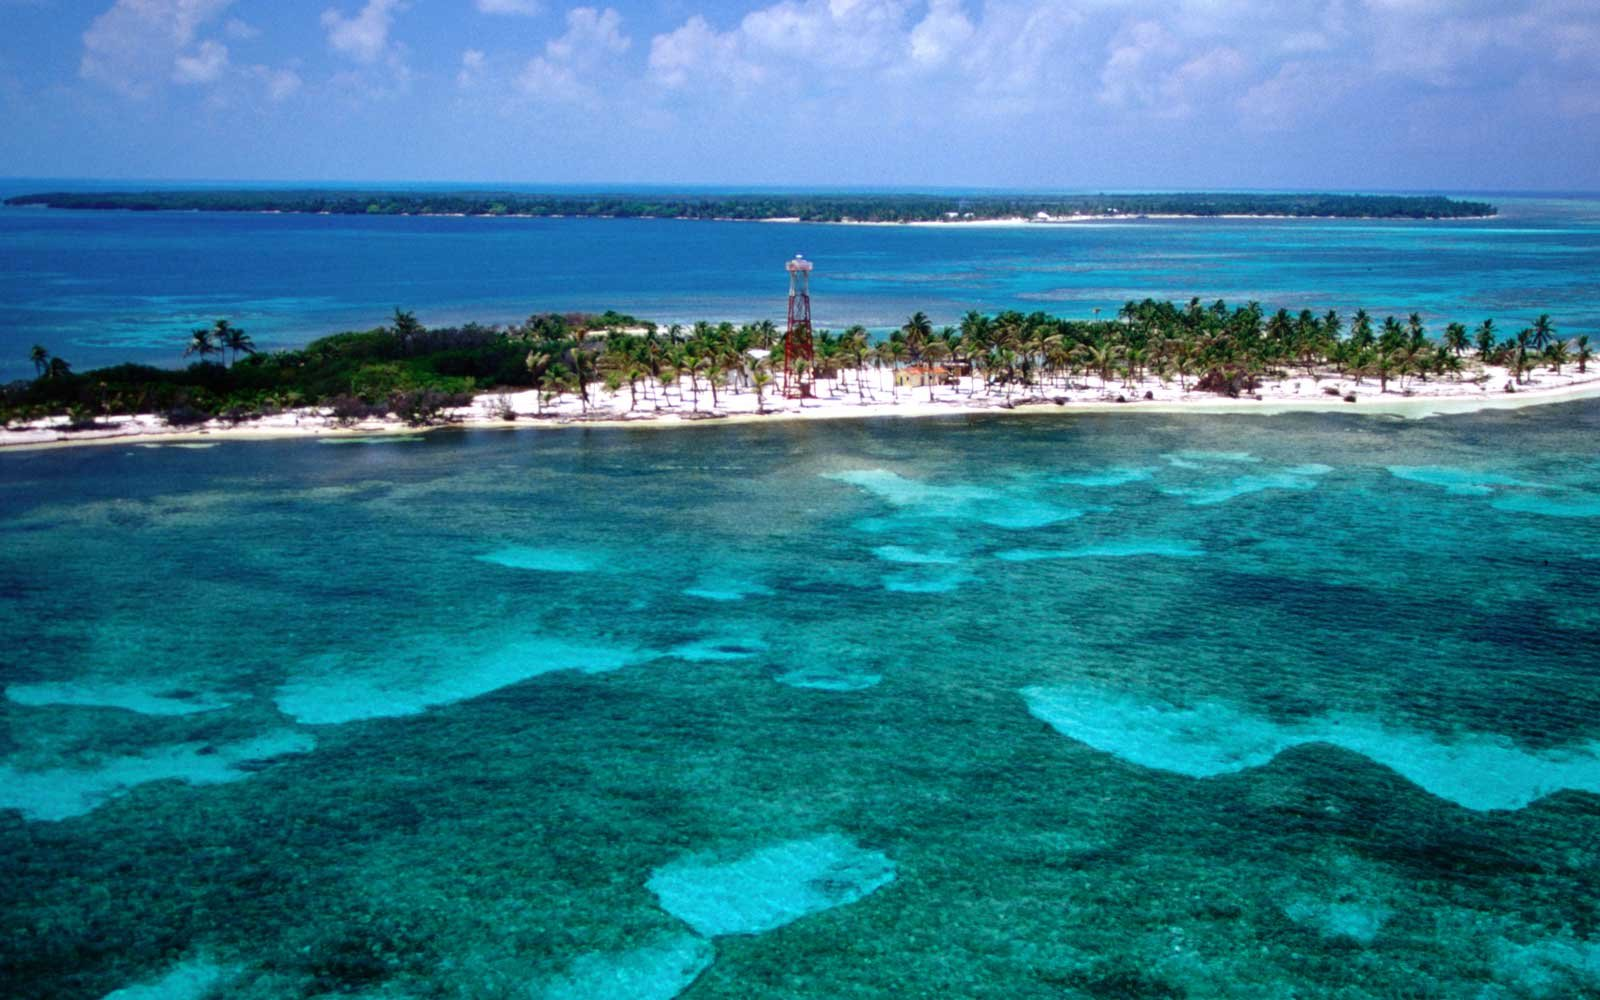 Tropical reefs surround Turneffe Island, a coral atoll which houses the Turneffe Islands Lodge.